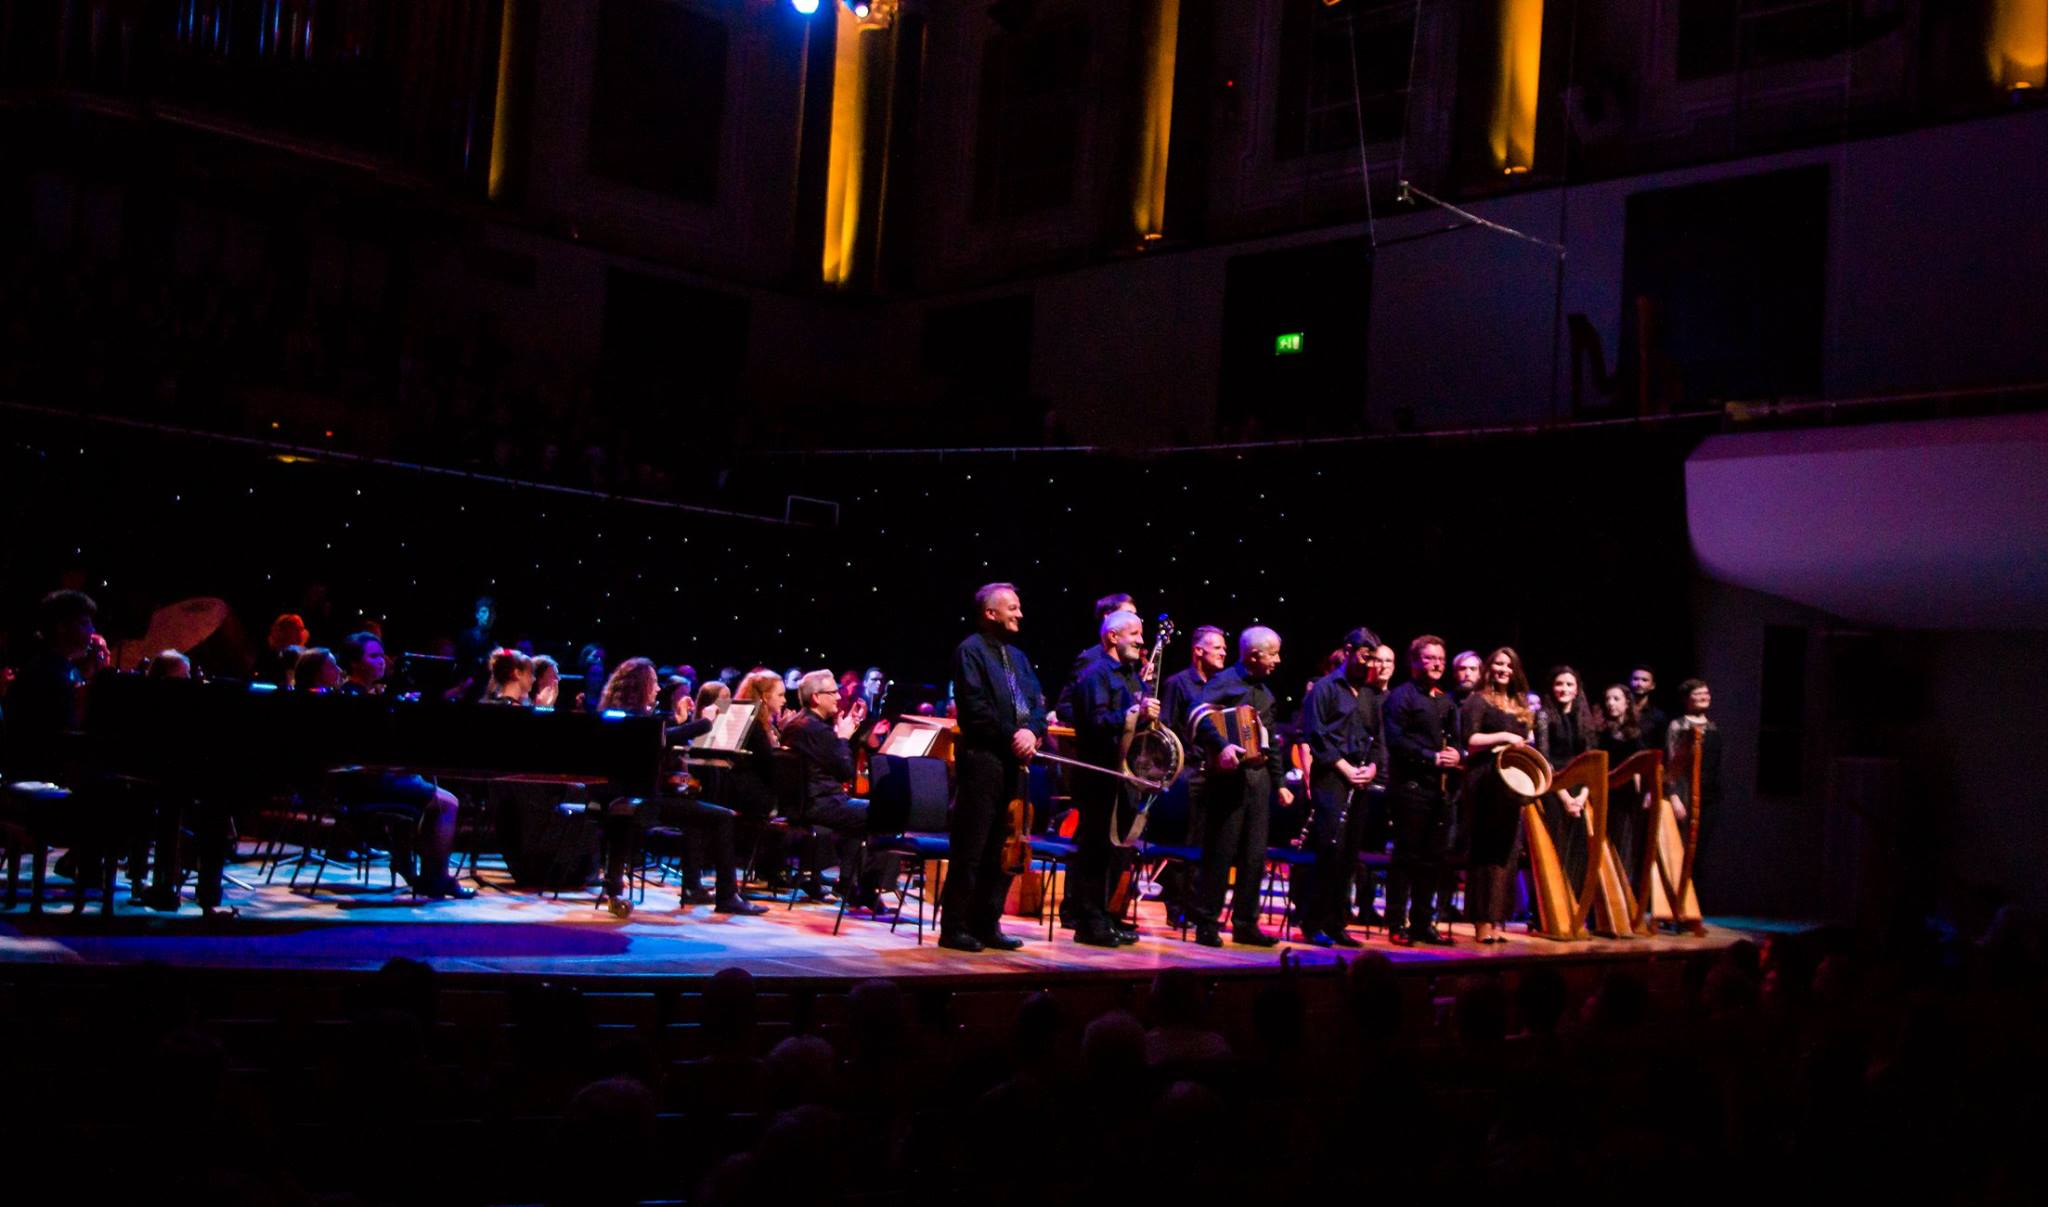 Performance of Lyric FM Composer in Residence Linda Buckley's 'Solas Na Gealai Bui' at the National Concert Hall Dublin